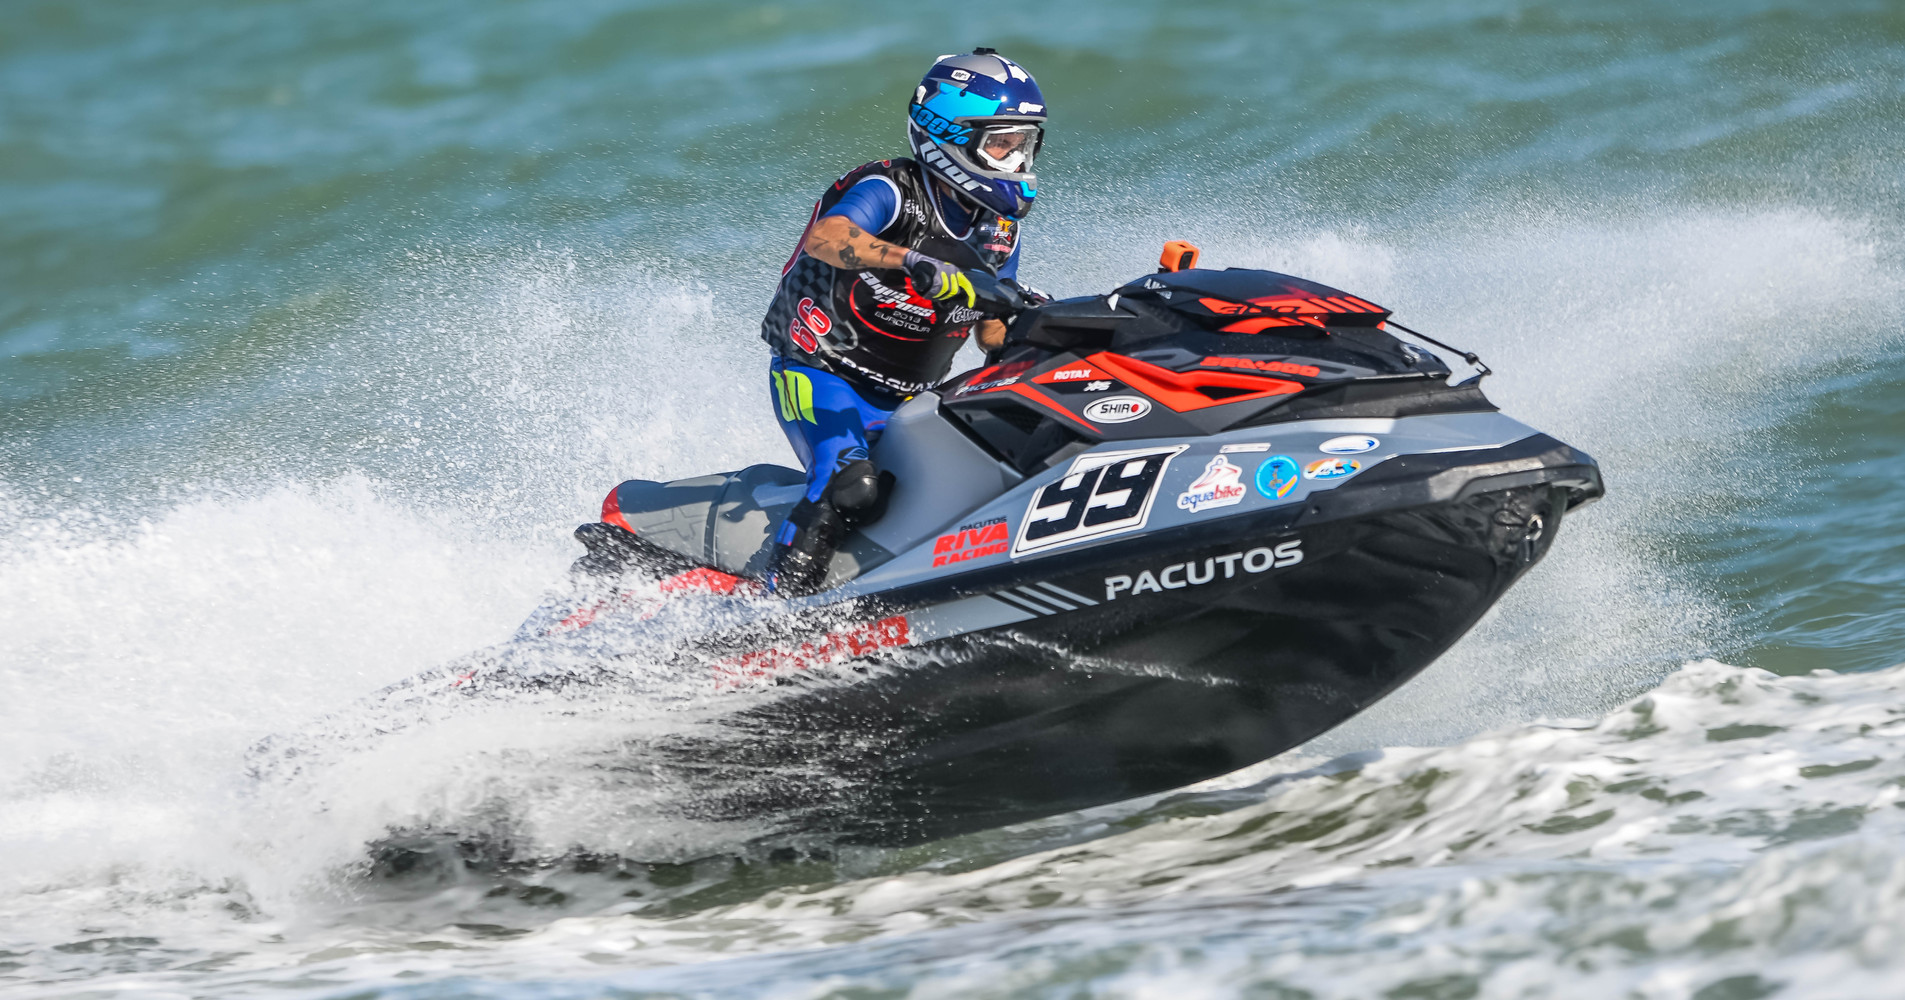 Favolini on fire at the finale of the P1 AquaX EuroTour - P1 AquaX